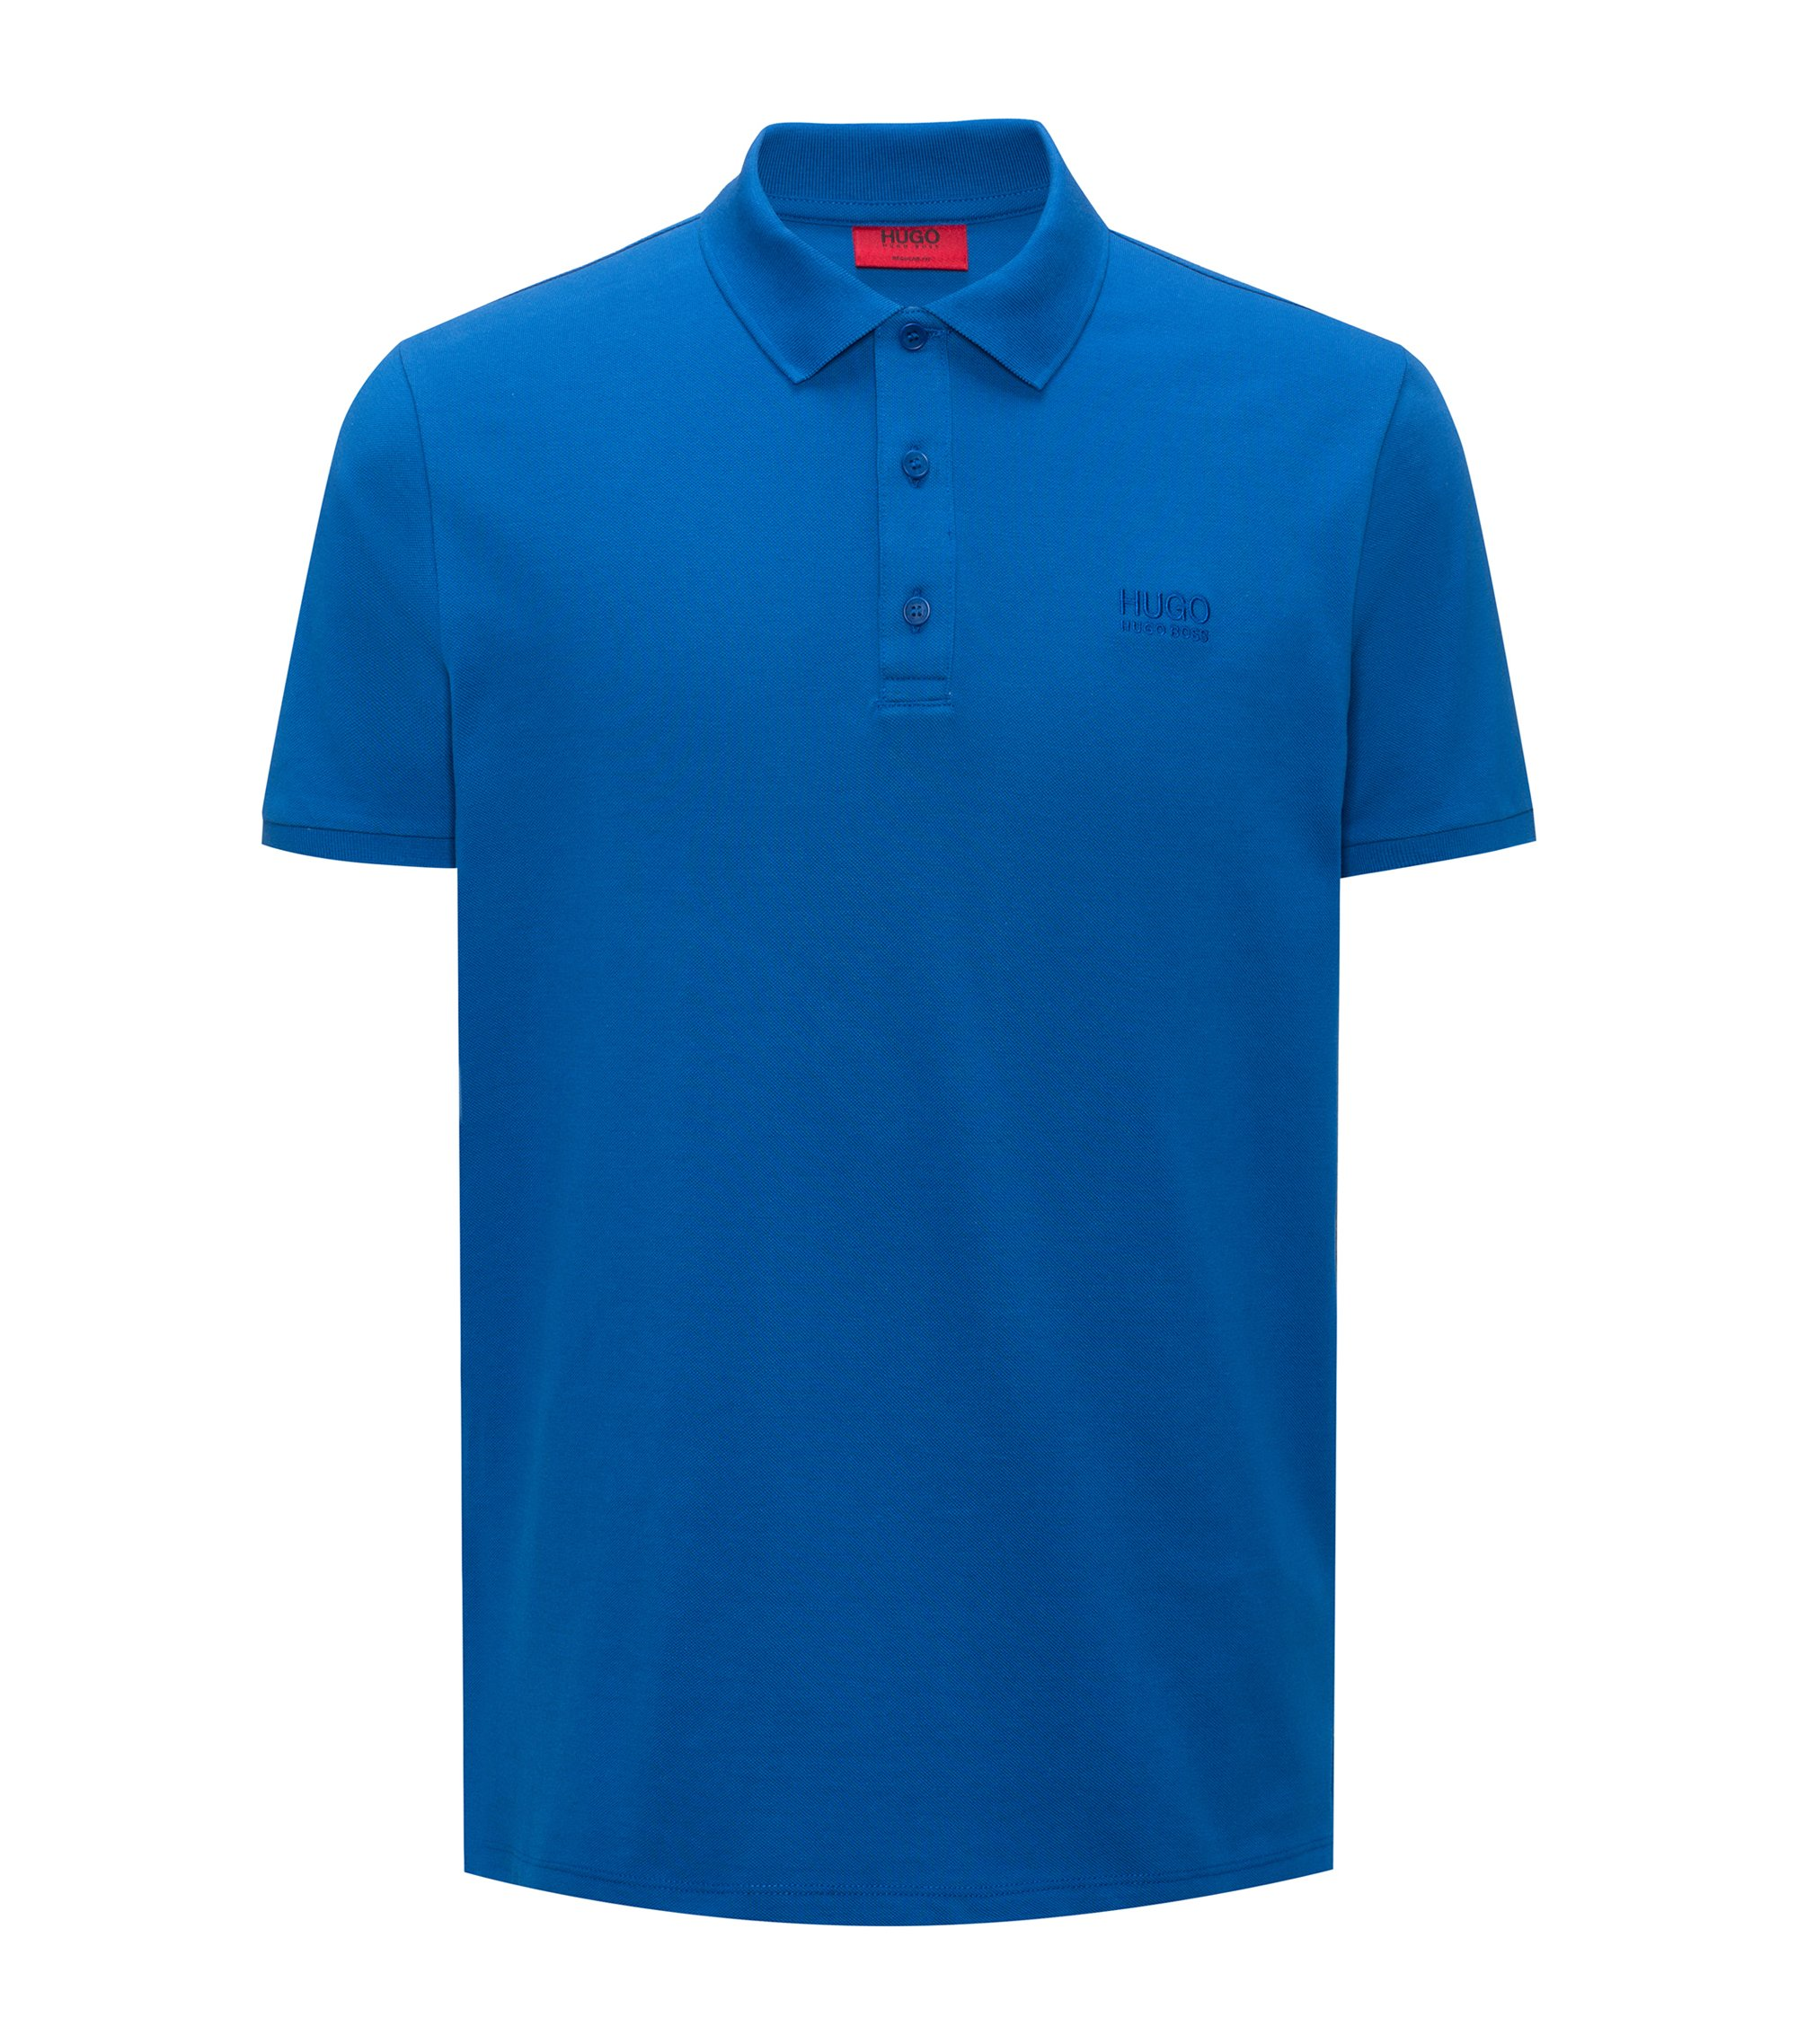 Regular-Fit Poloshirt aus softer Baumwolle, Blau